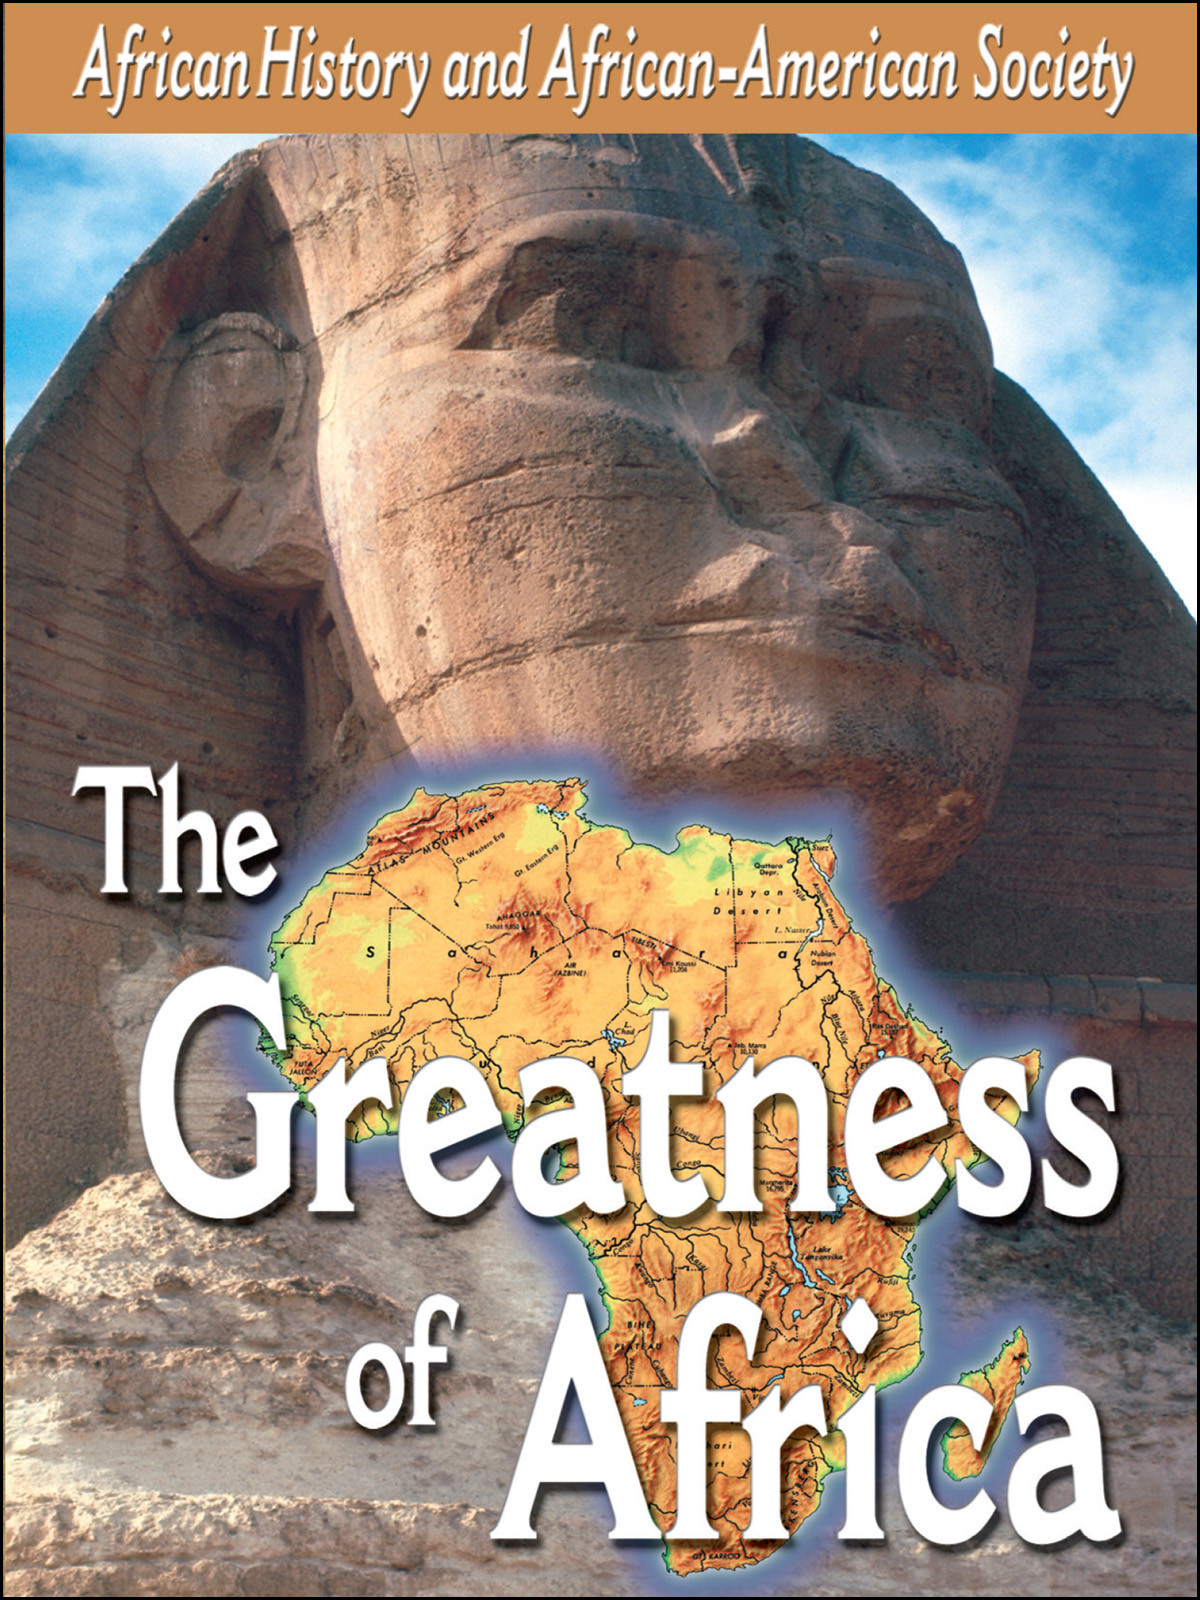 L902 - African-American History The Greatness of Africa